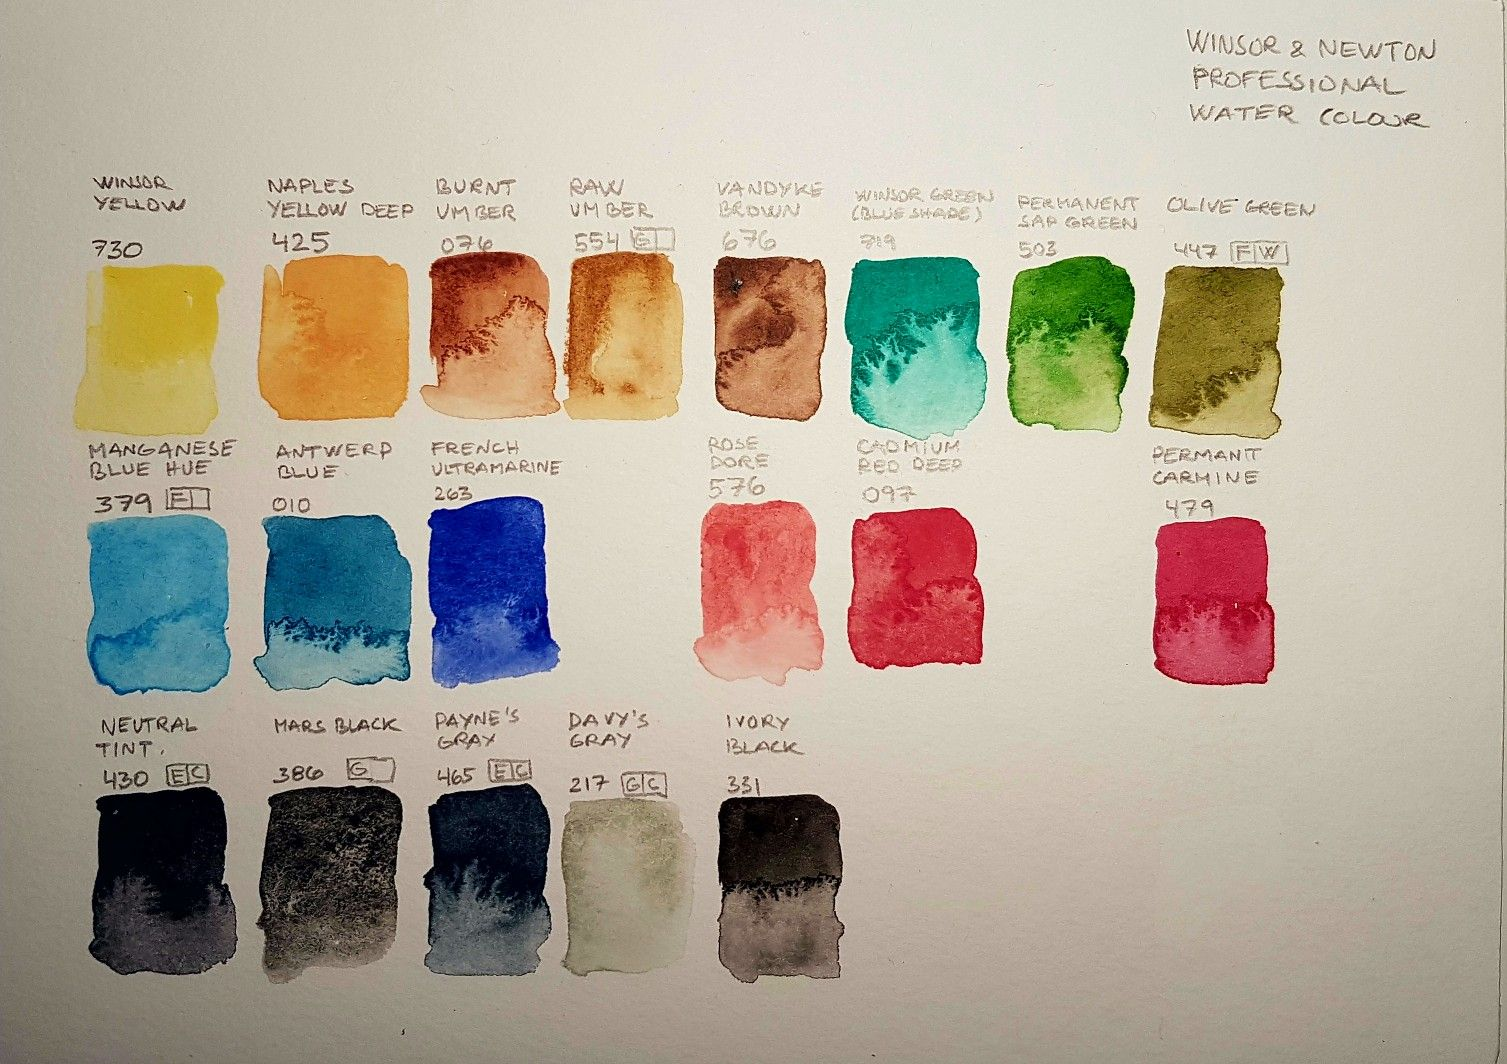 My Winsor Newton Pro Water Colour Palet With Images Pen And